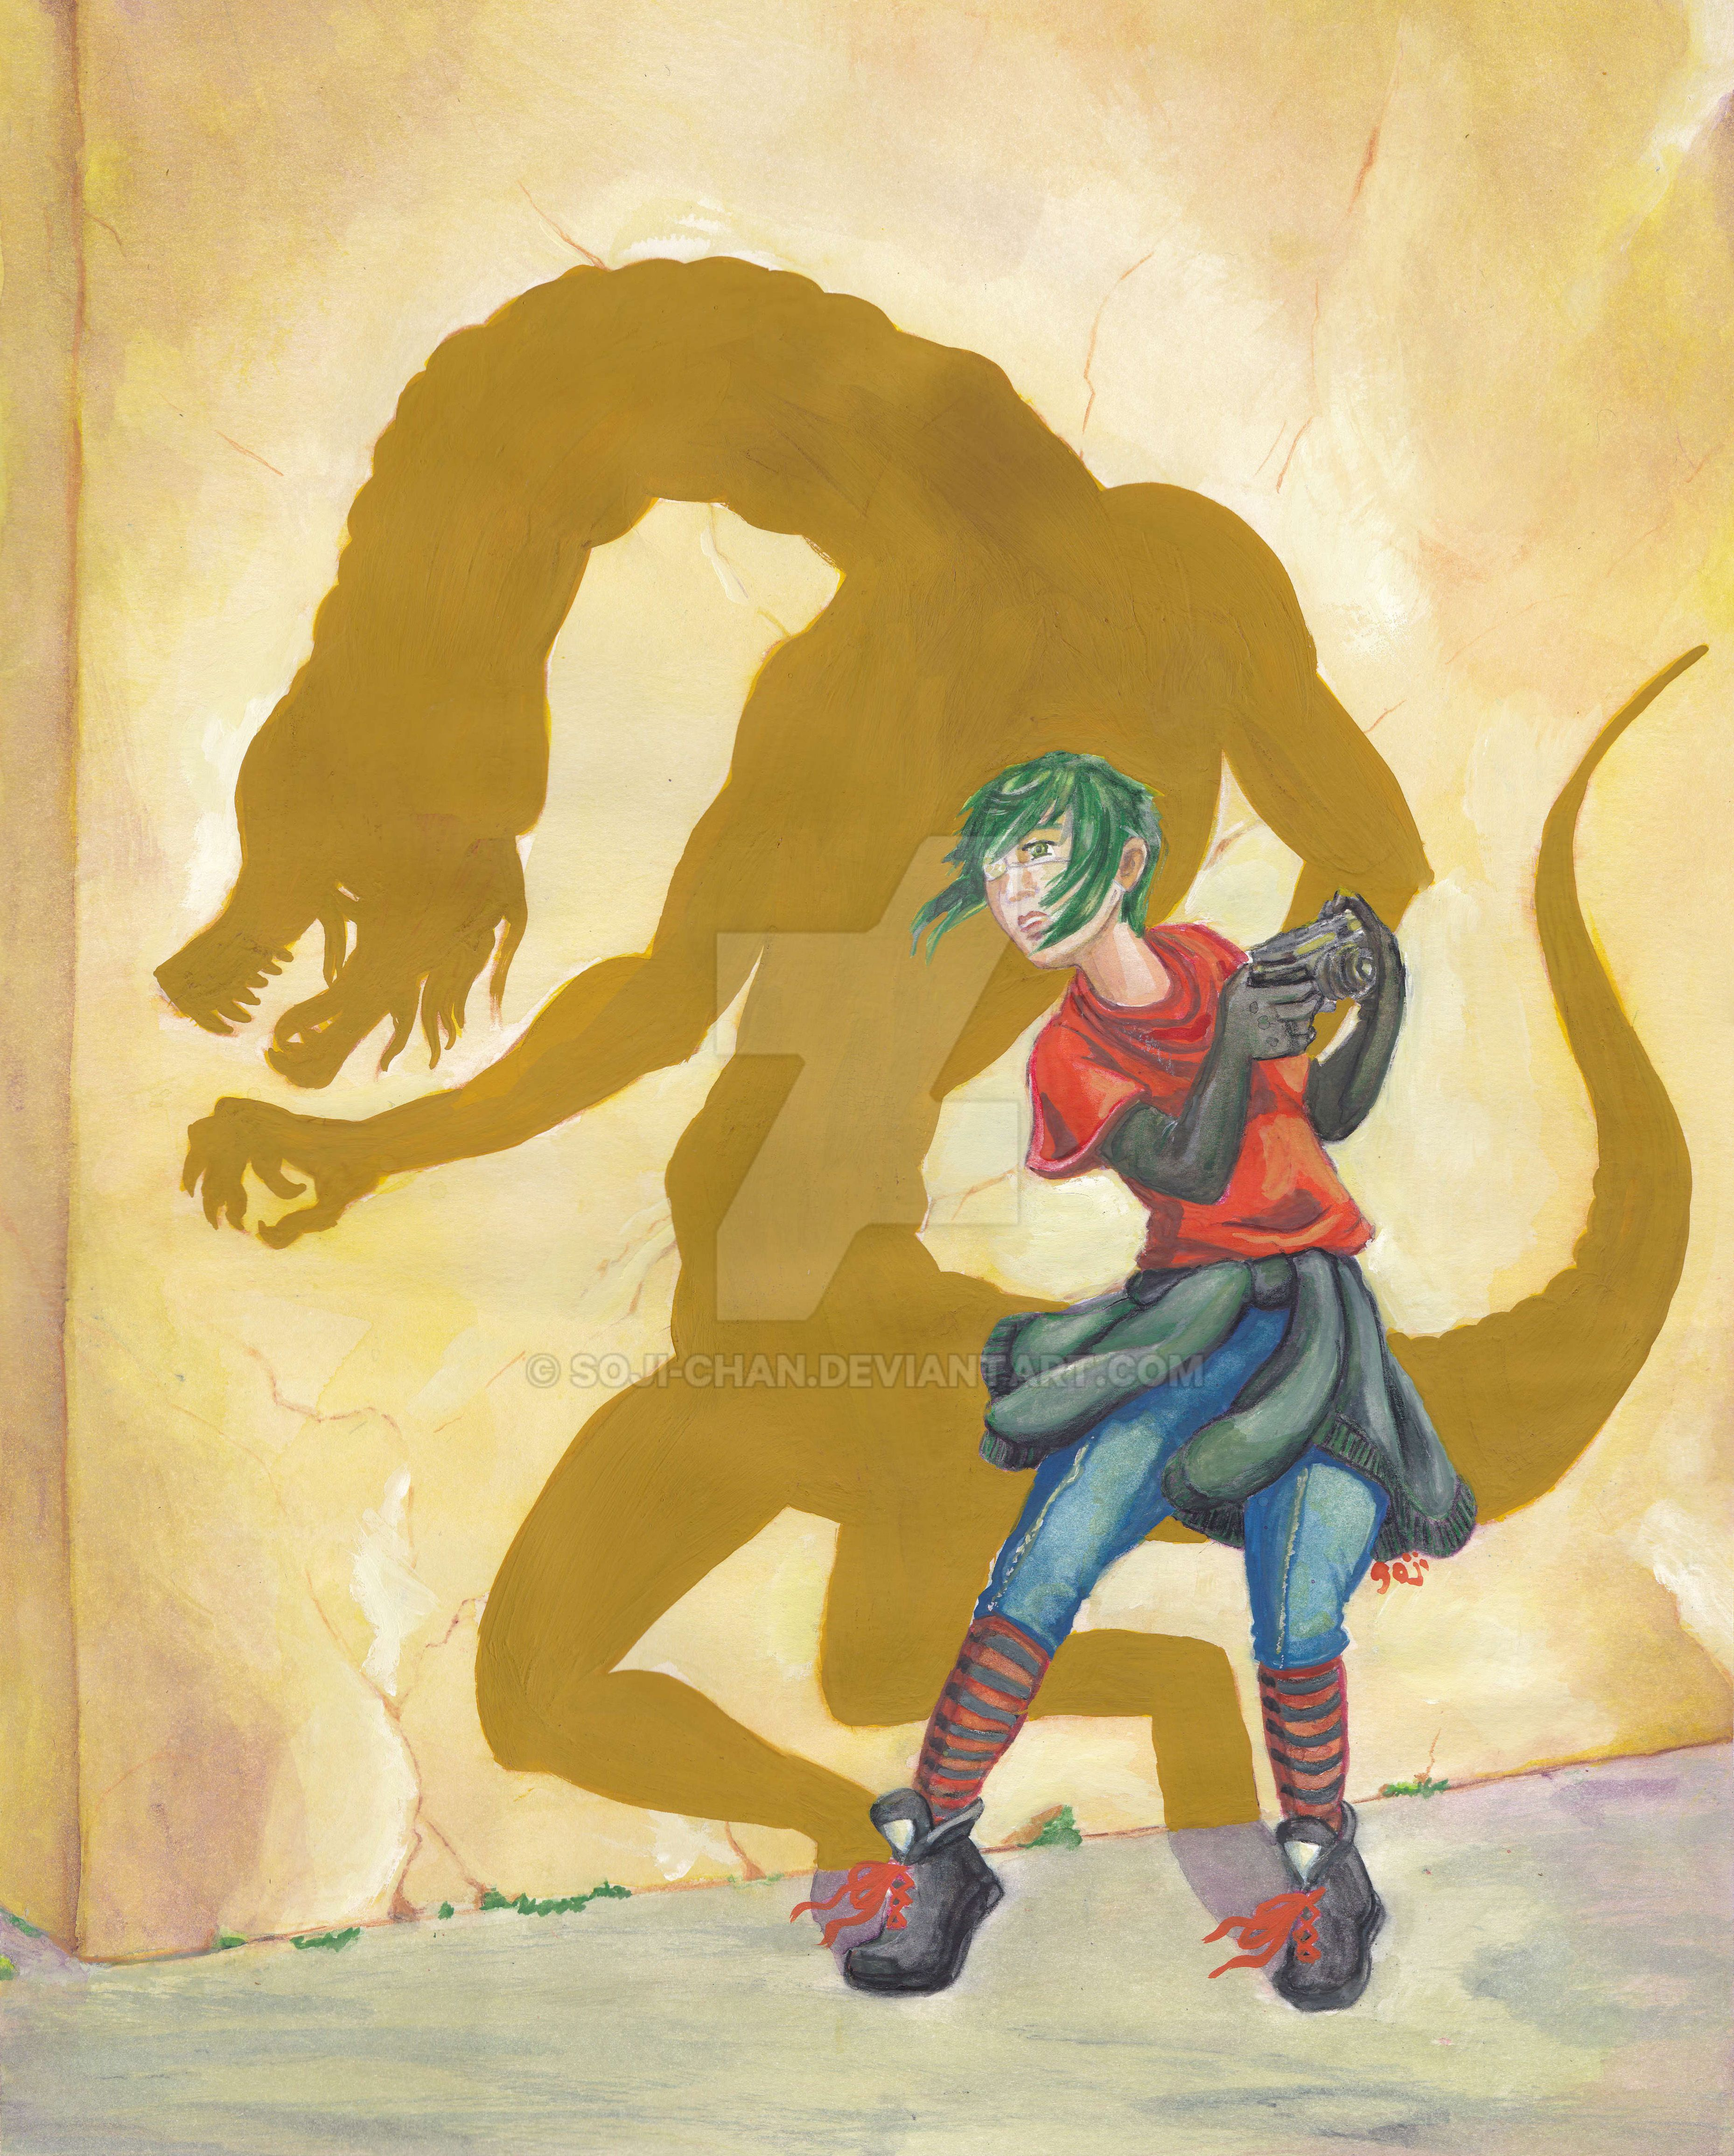 The Beast within by Soji-chan